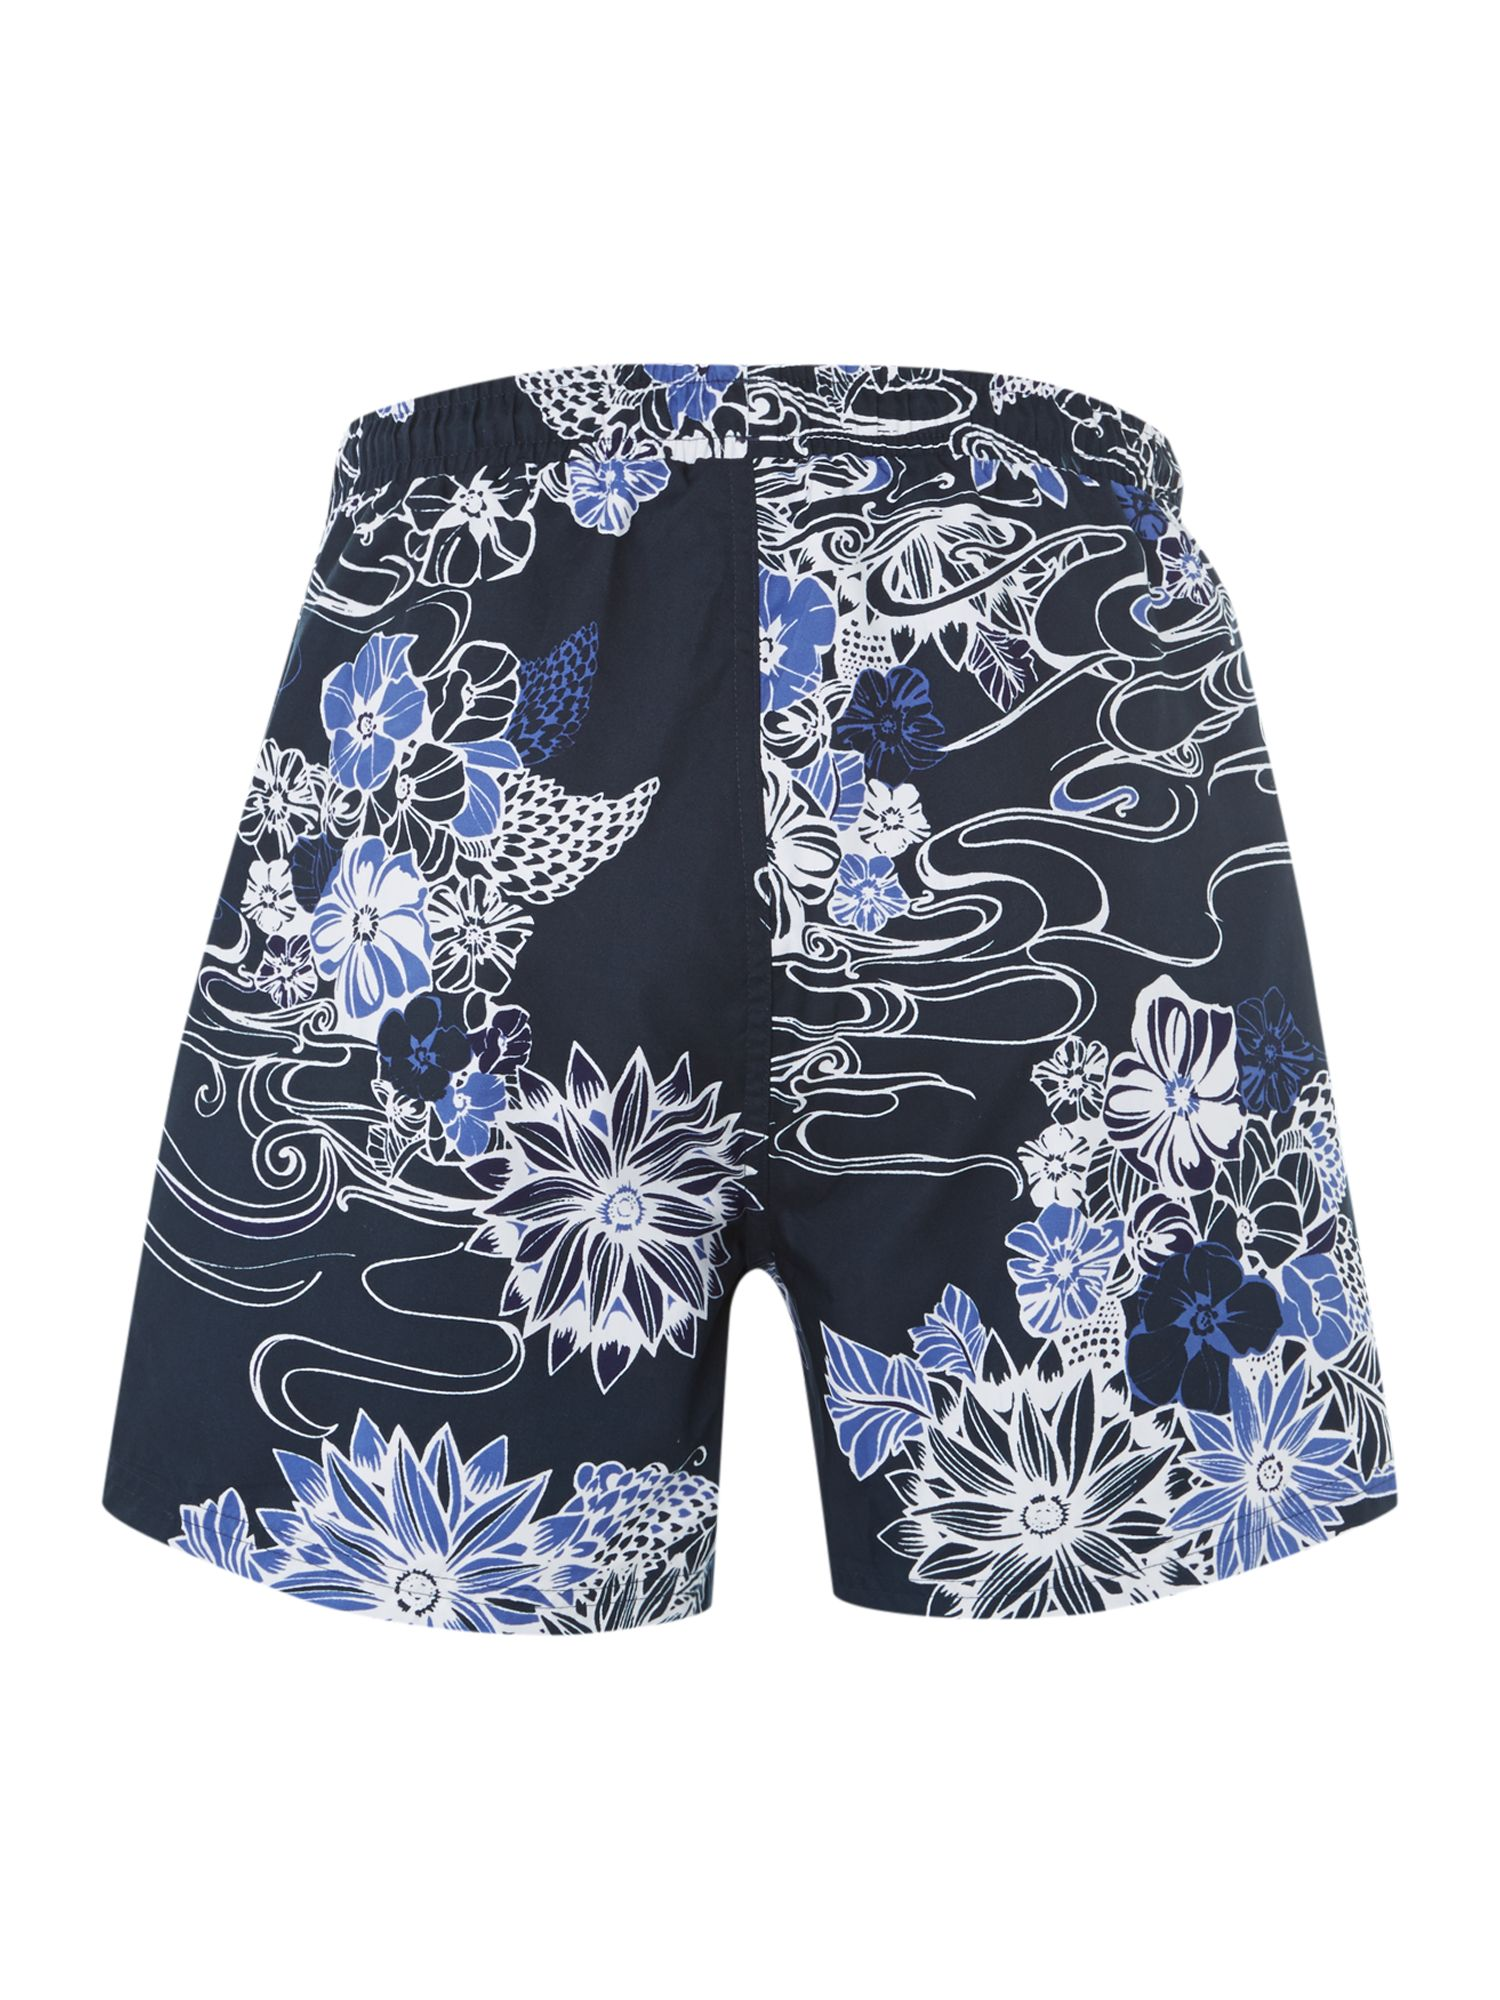 Piranha floral print swim short